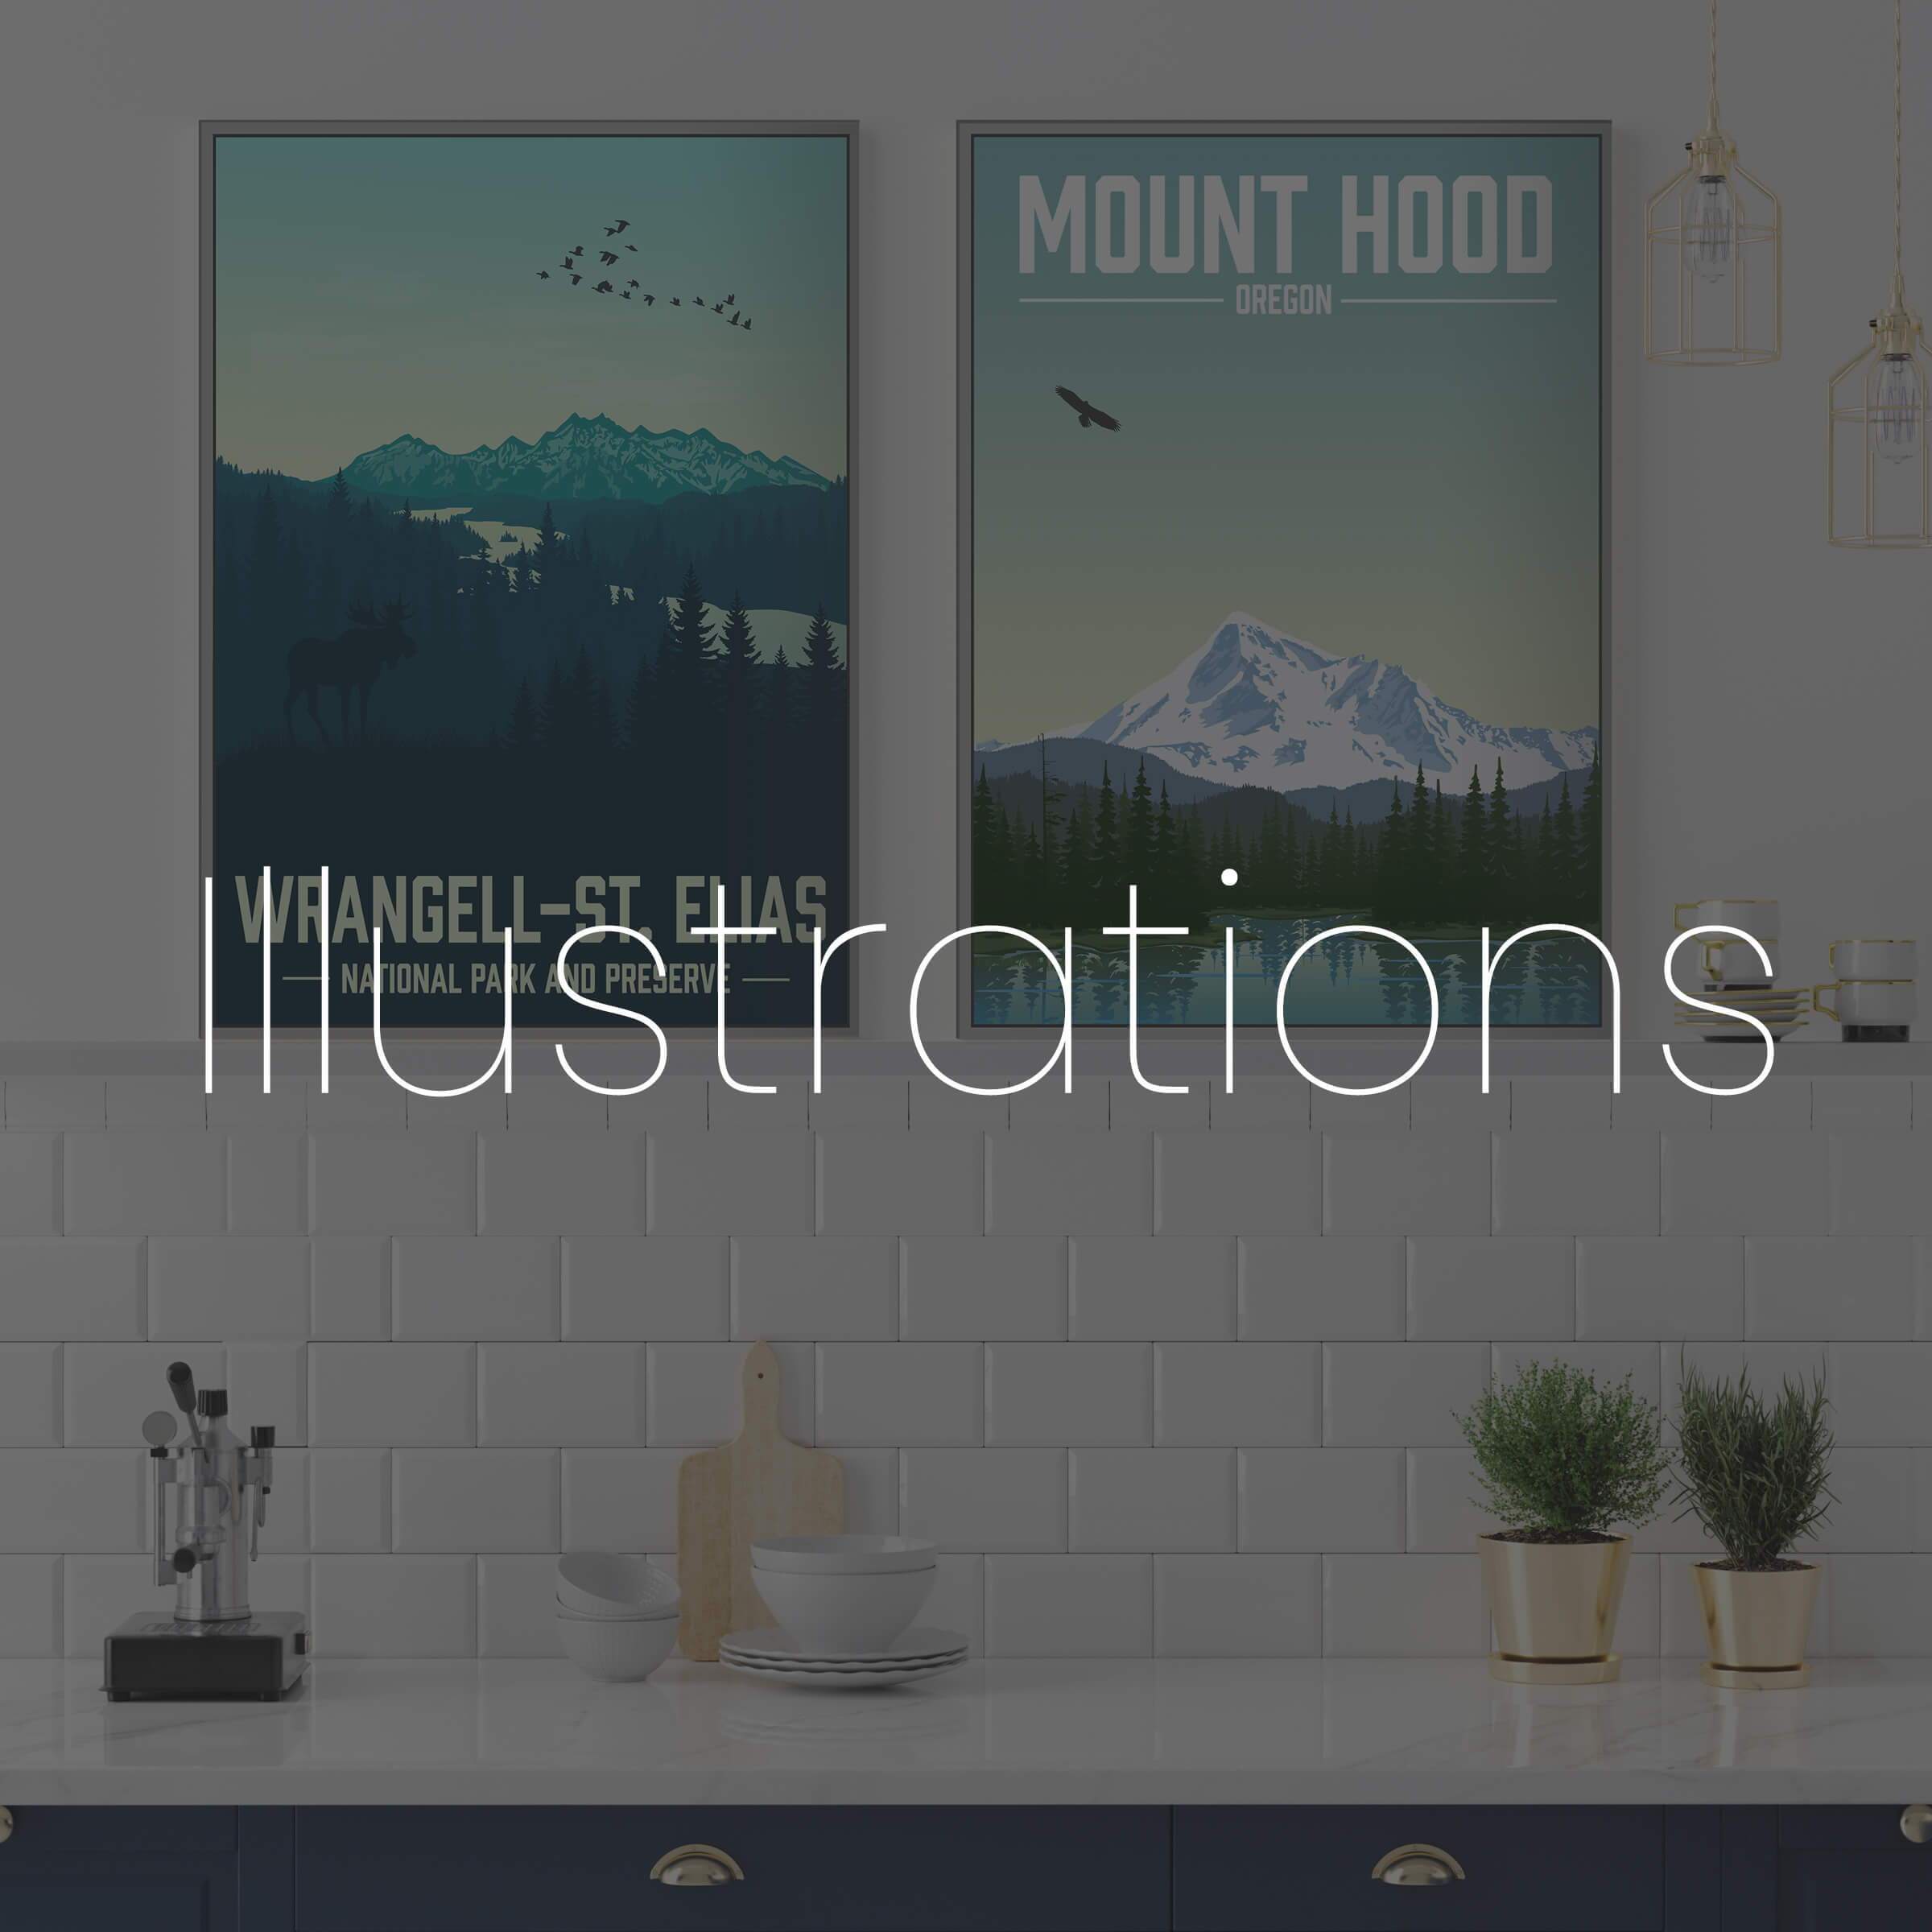 Huge varieties of prints to make your house a home!